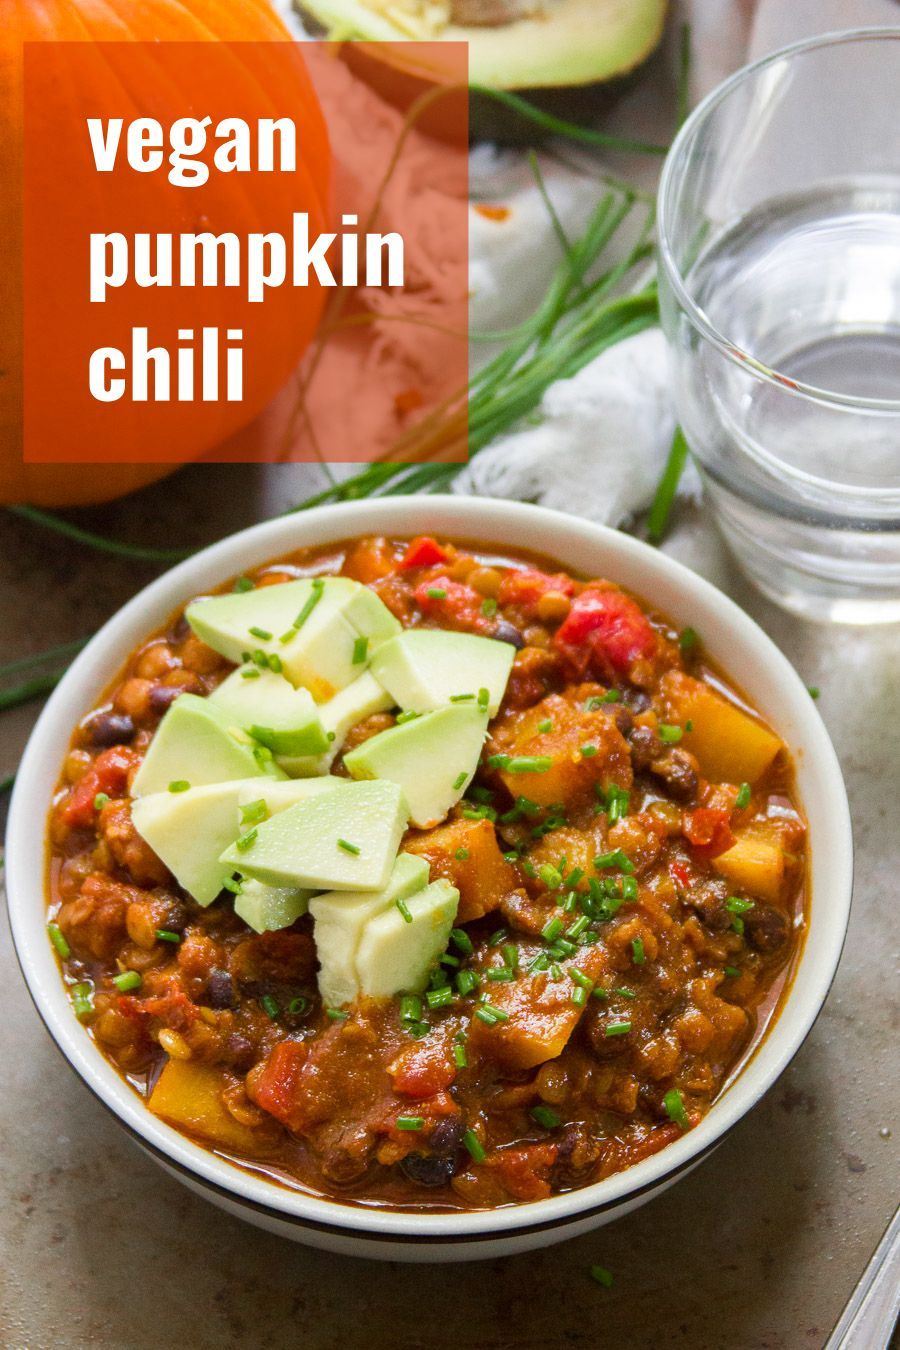 Say Hello To The Ultimate Pumpkin Chili This Hearty Vegan Stew Is Packed With Juicy Pu Pumpkin Recipes Dinner Vegetarian Pumpkin Chili Pumpkin Recipes Healthy